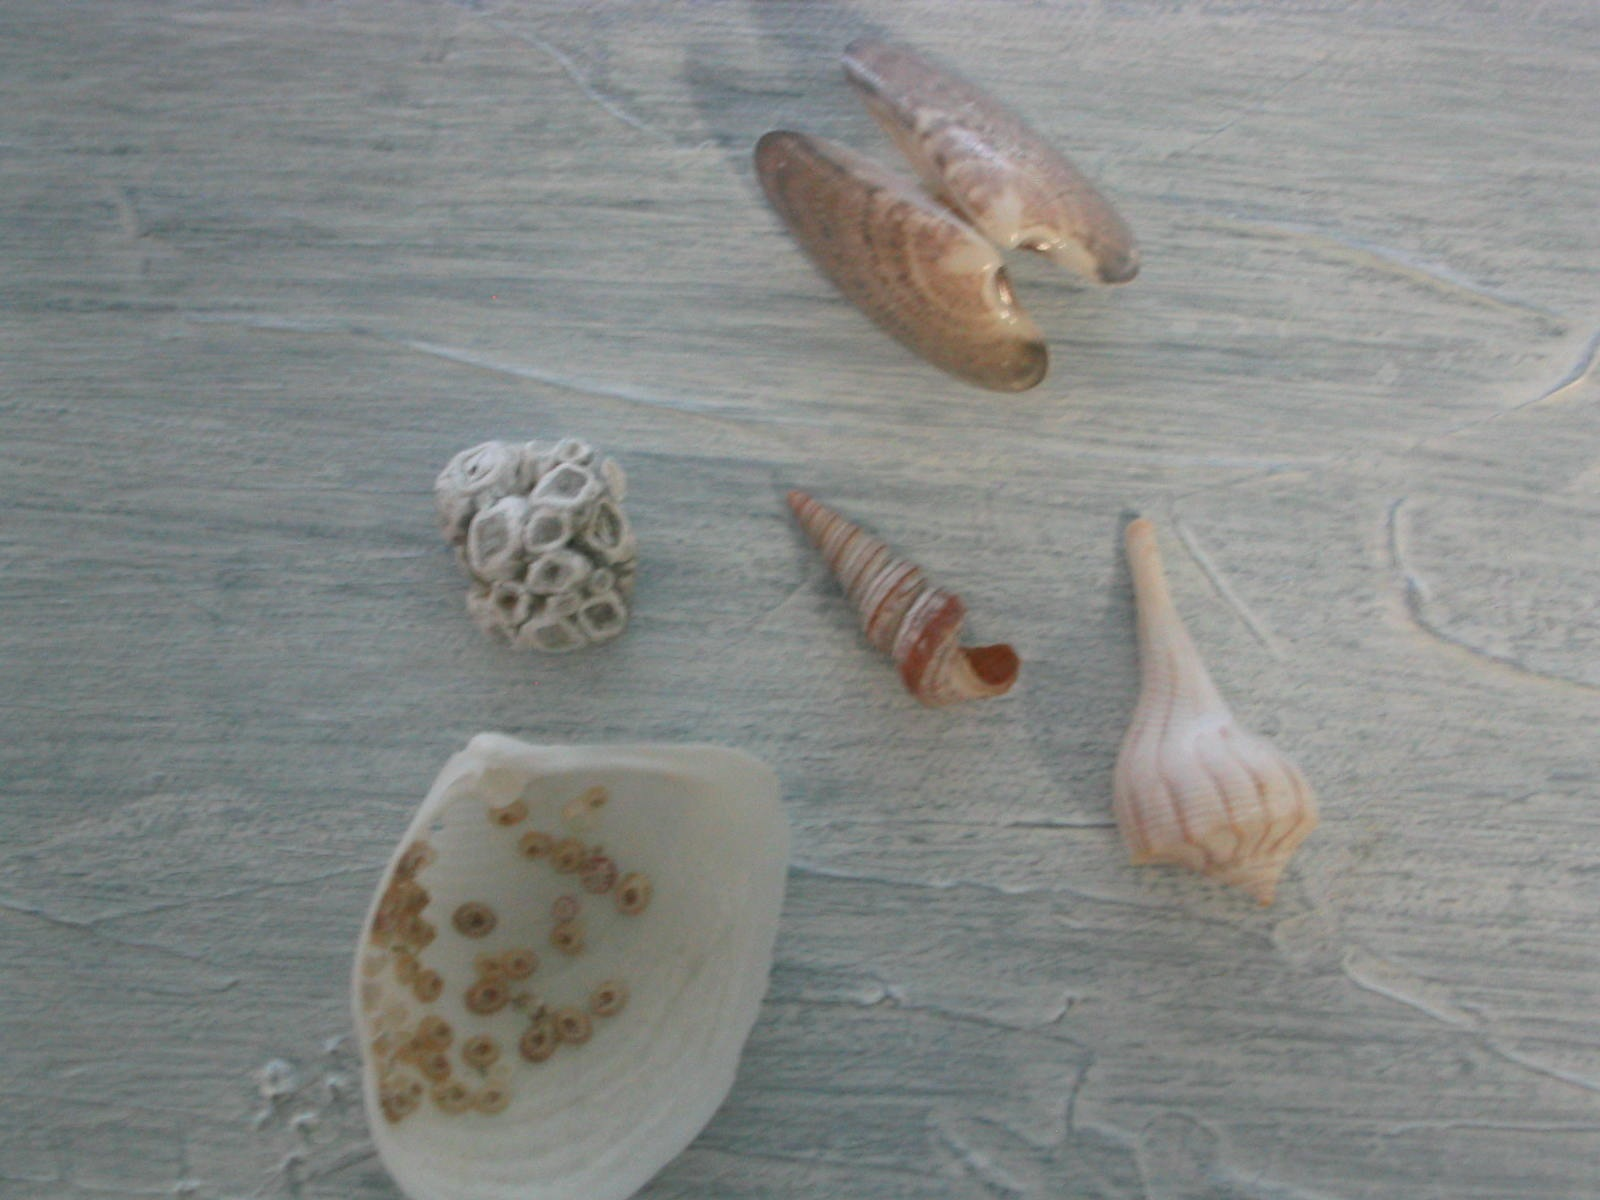 Shells on Anna Maria Island beaches